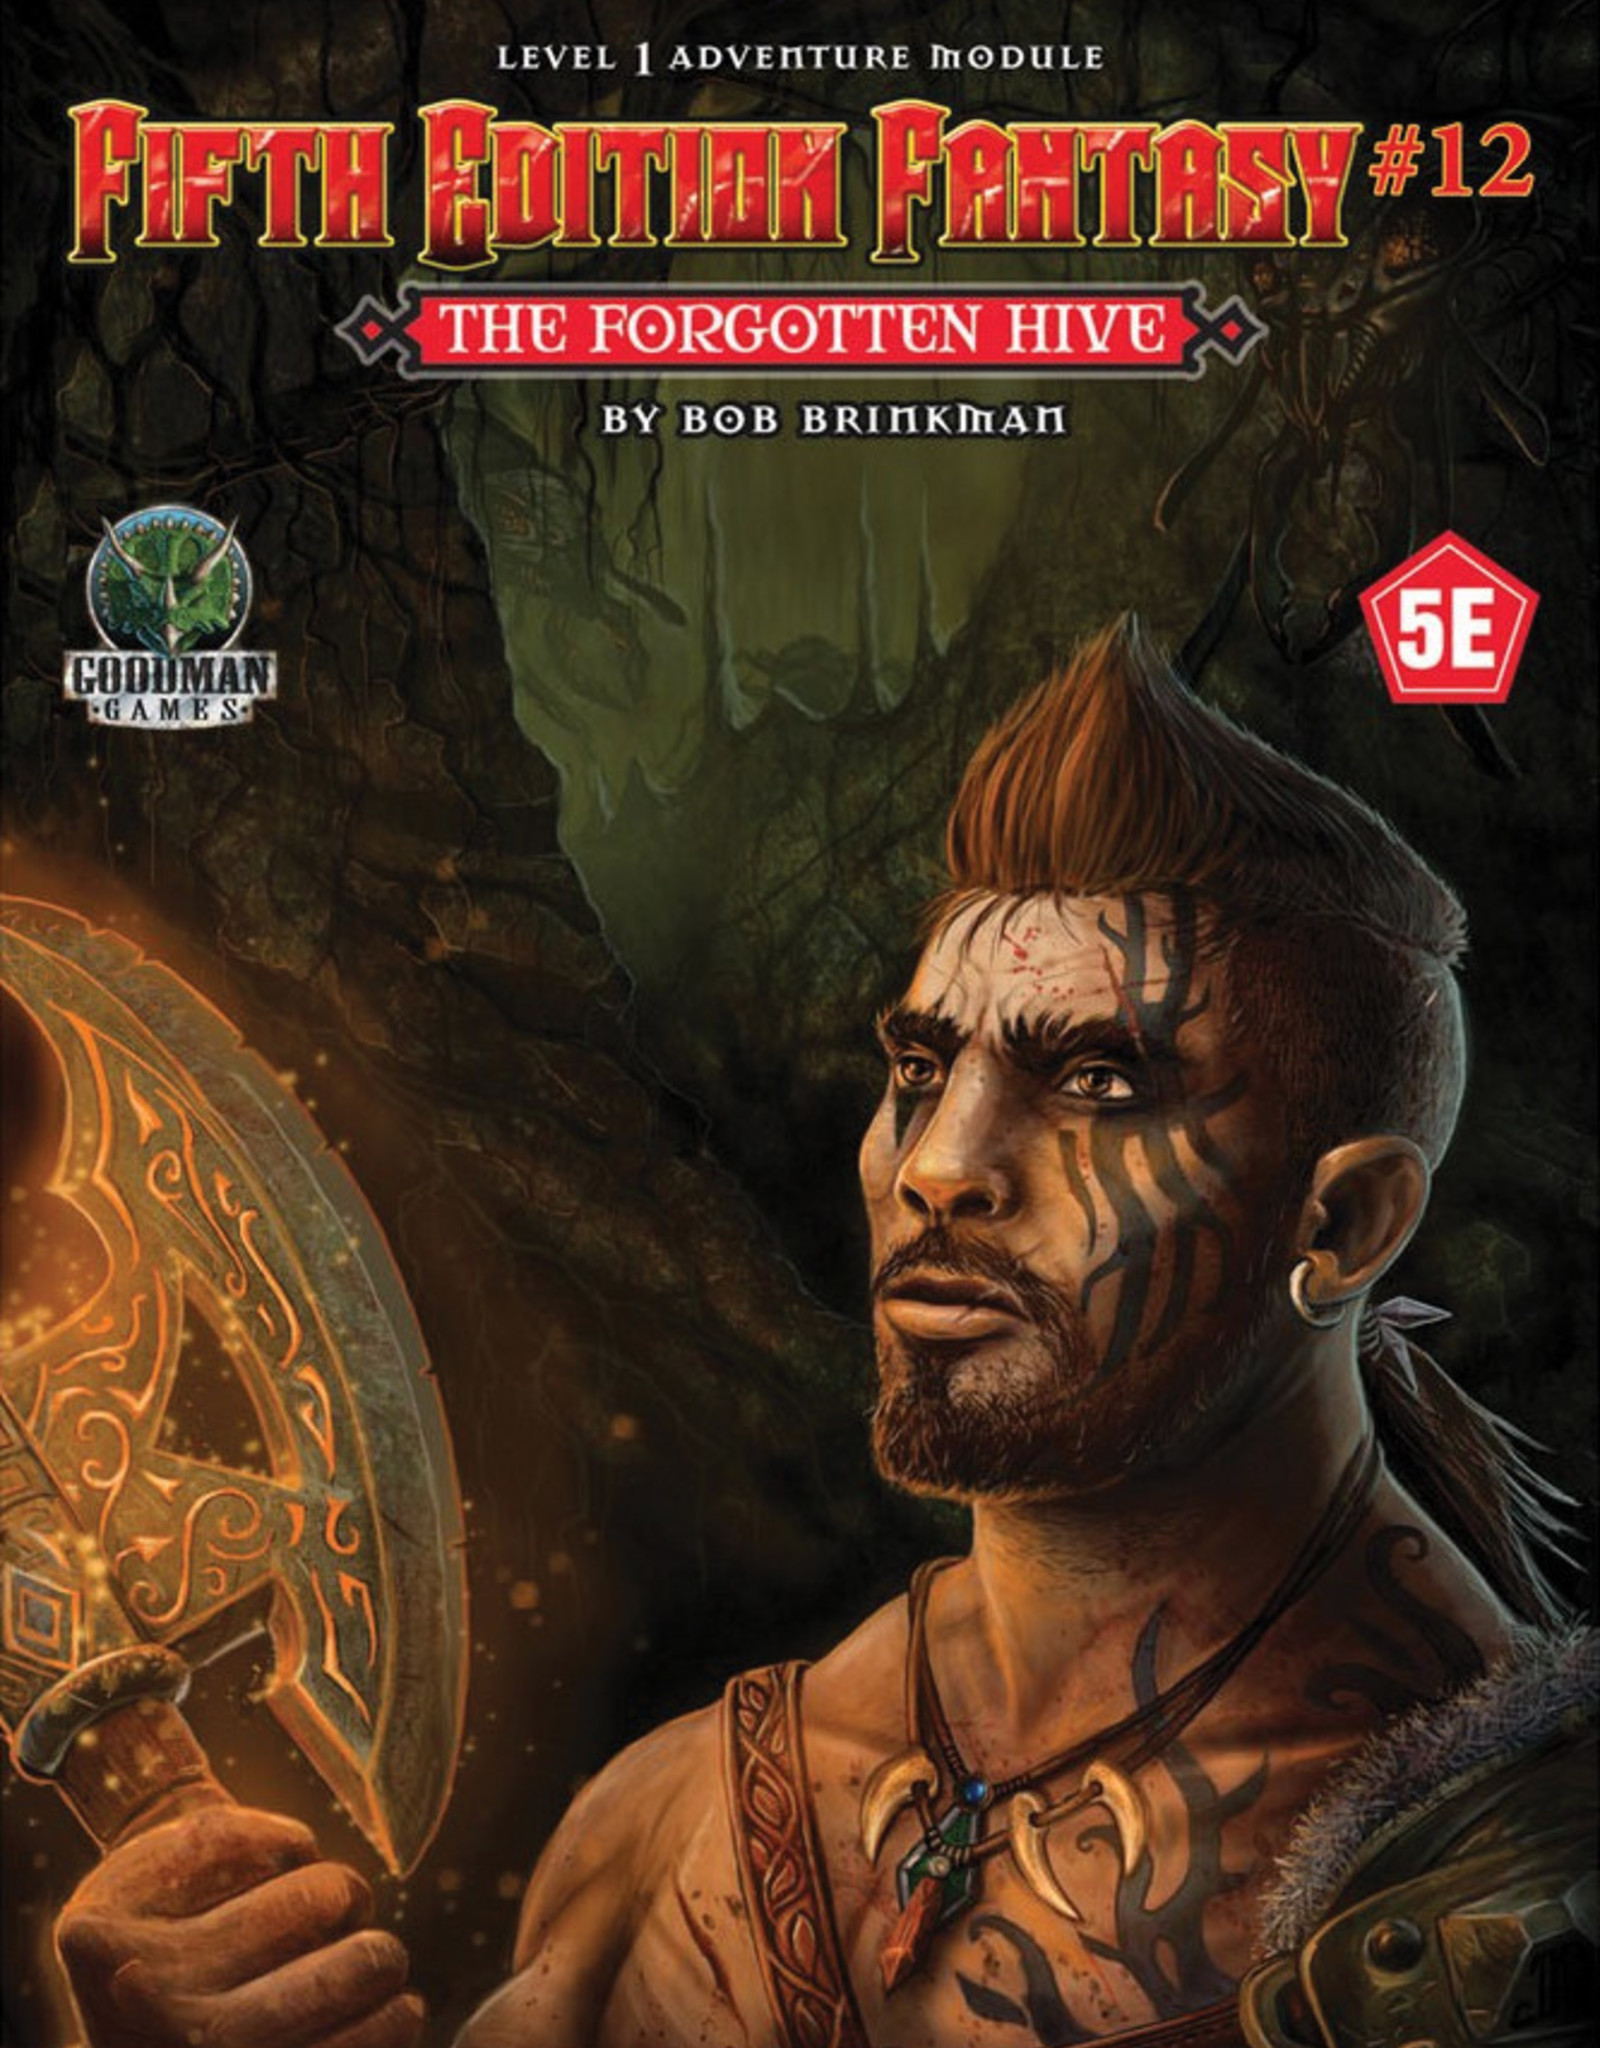 Goodman Games 5e Fantasy: #12 The Forgotten Hive